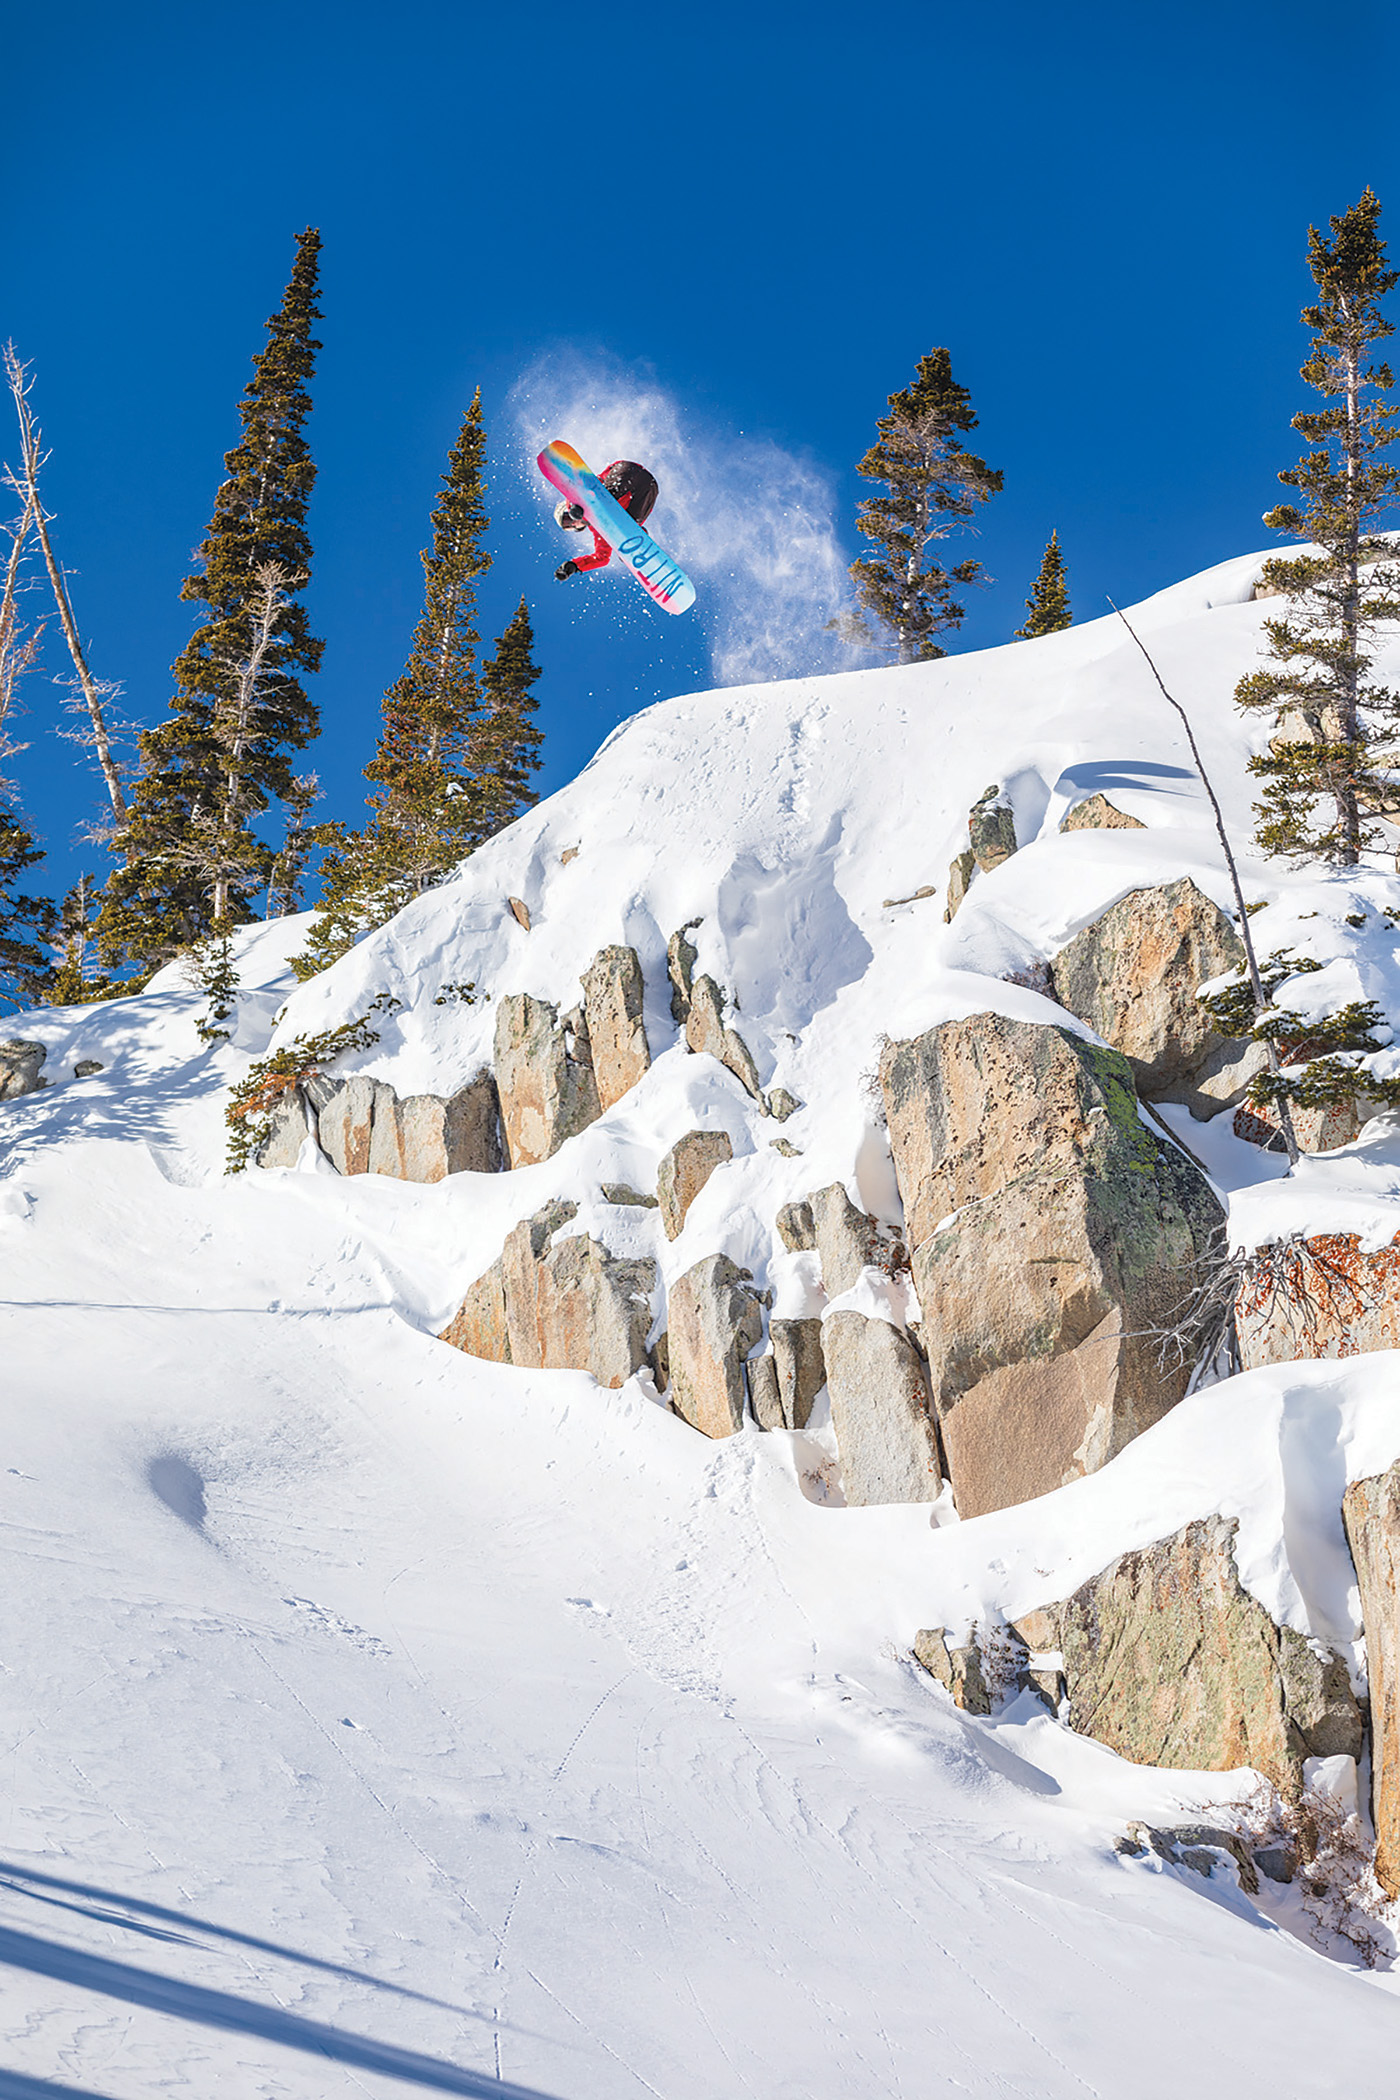 The Brighton backcountry is legendary in snowboarding. Chances are that if you have watched a snowboarding movie in the last two decades, you'll have seen footage from here. Sam Taxwood keeps the tradition alive.